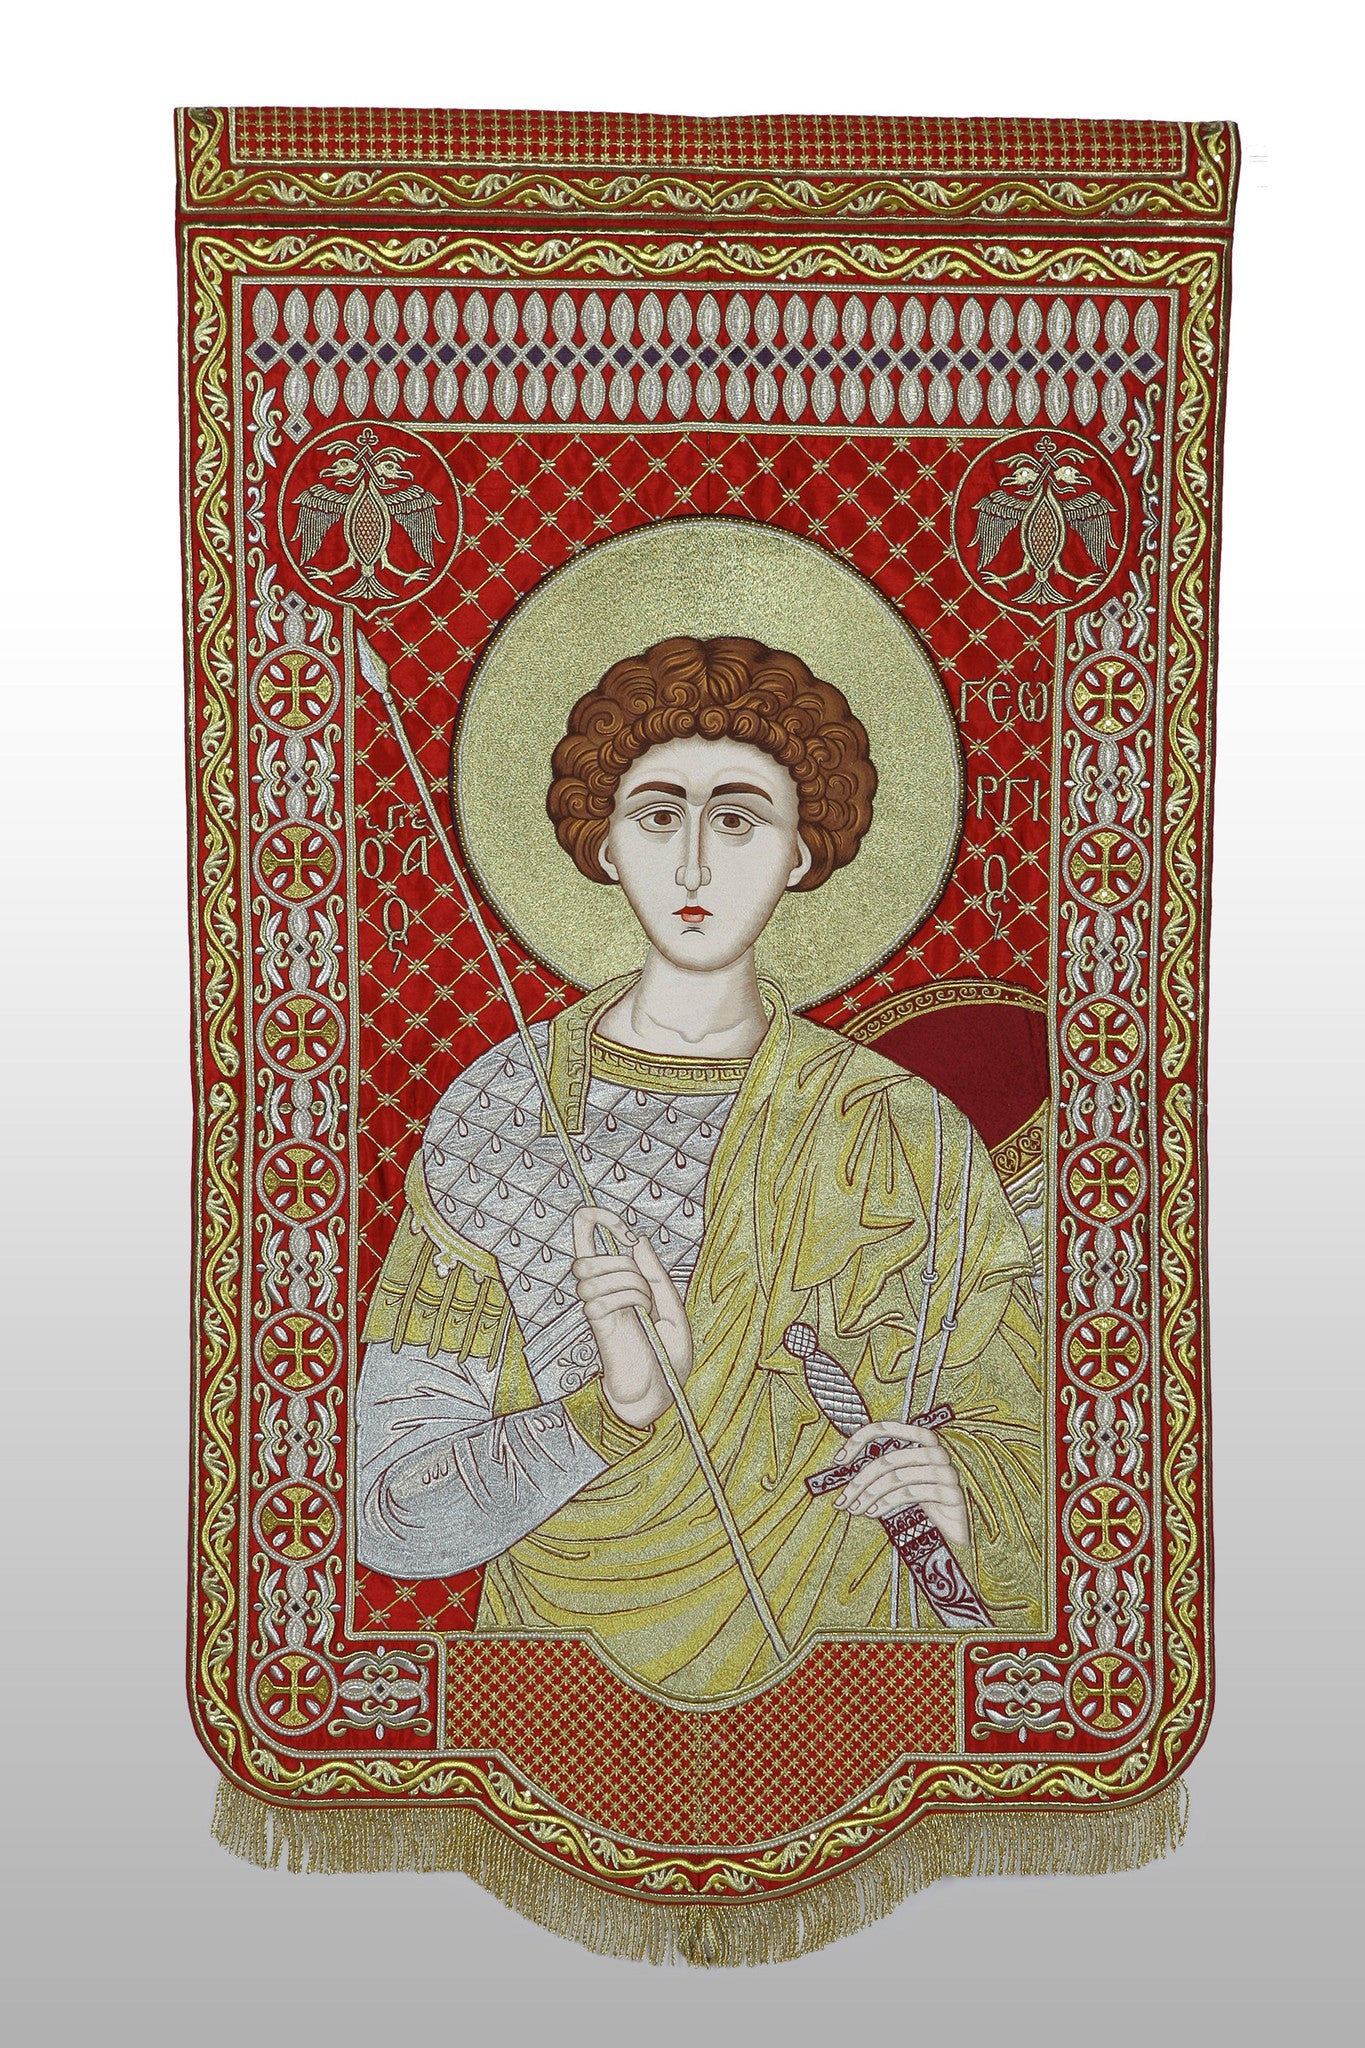 The Holy Great Martyr George